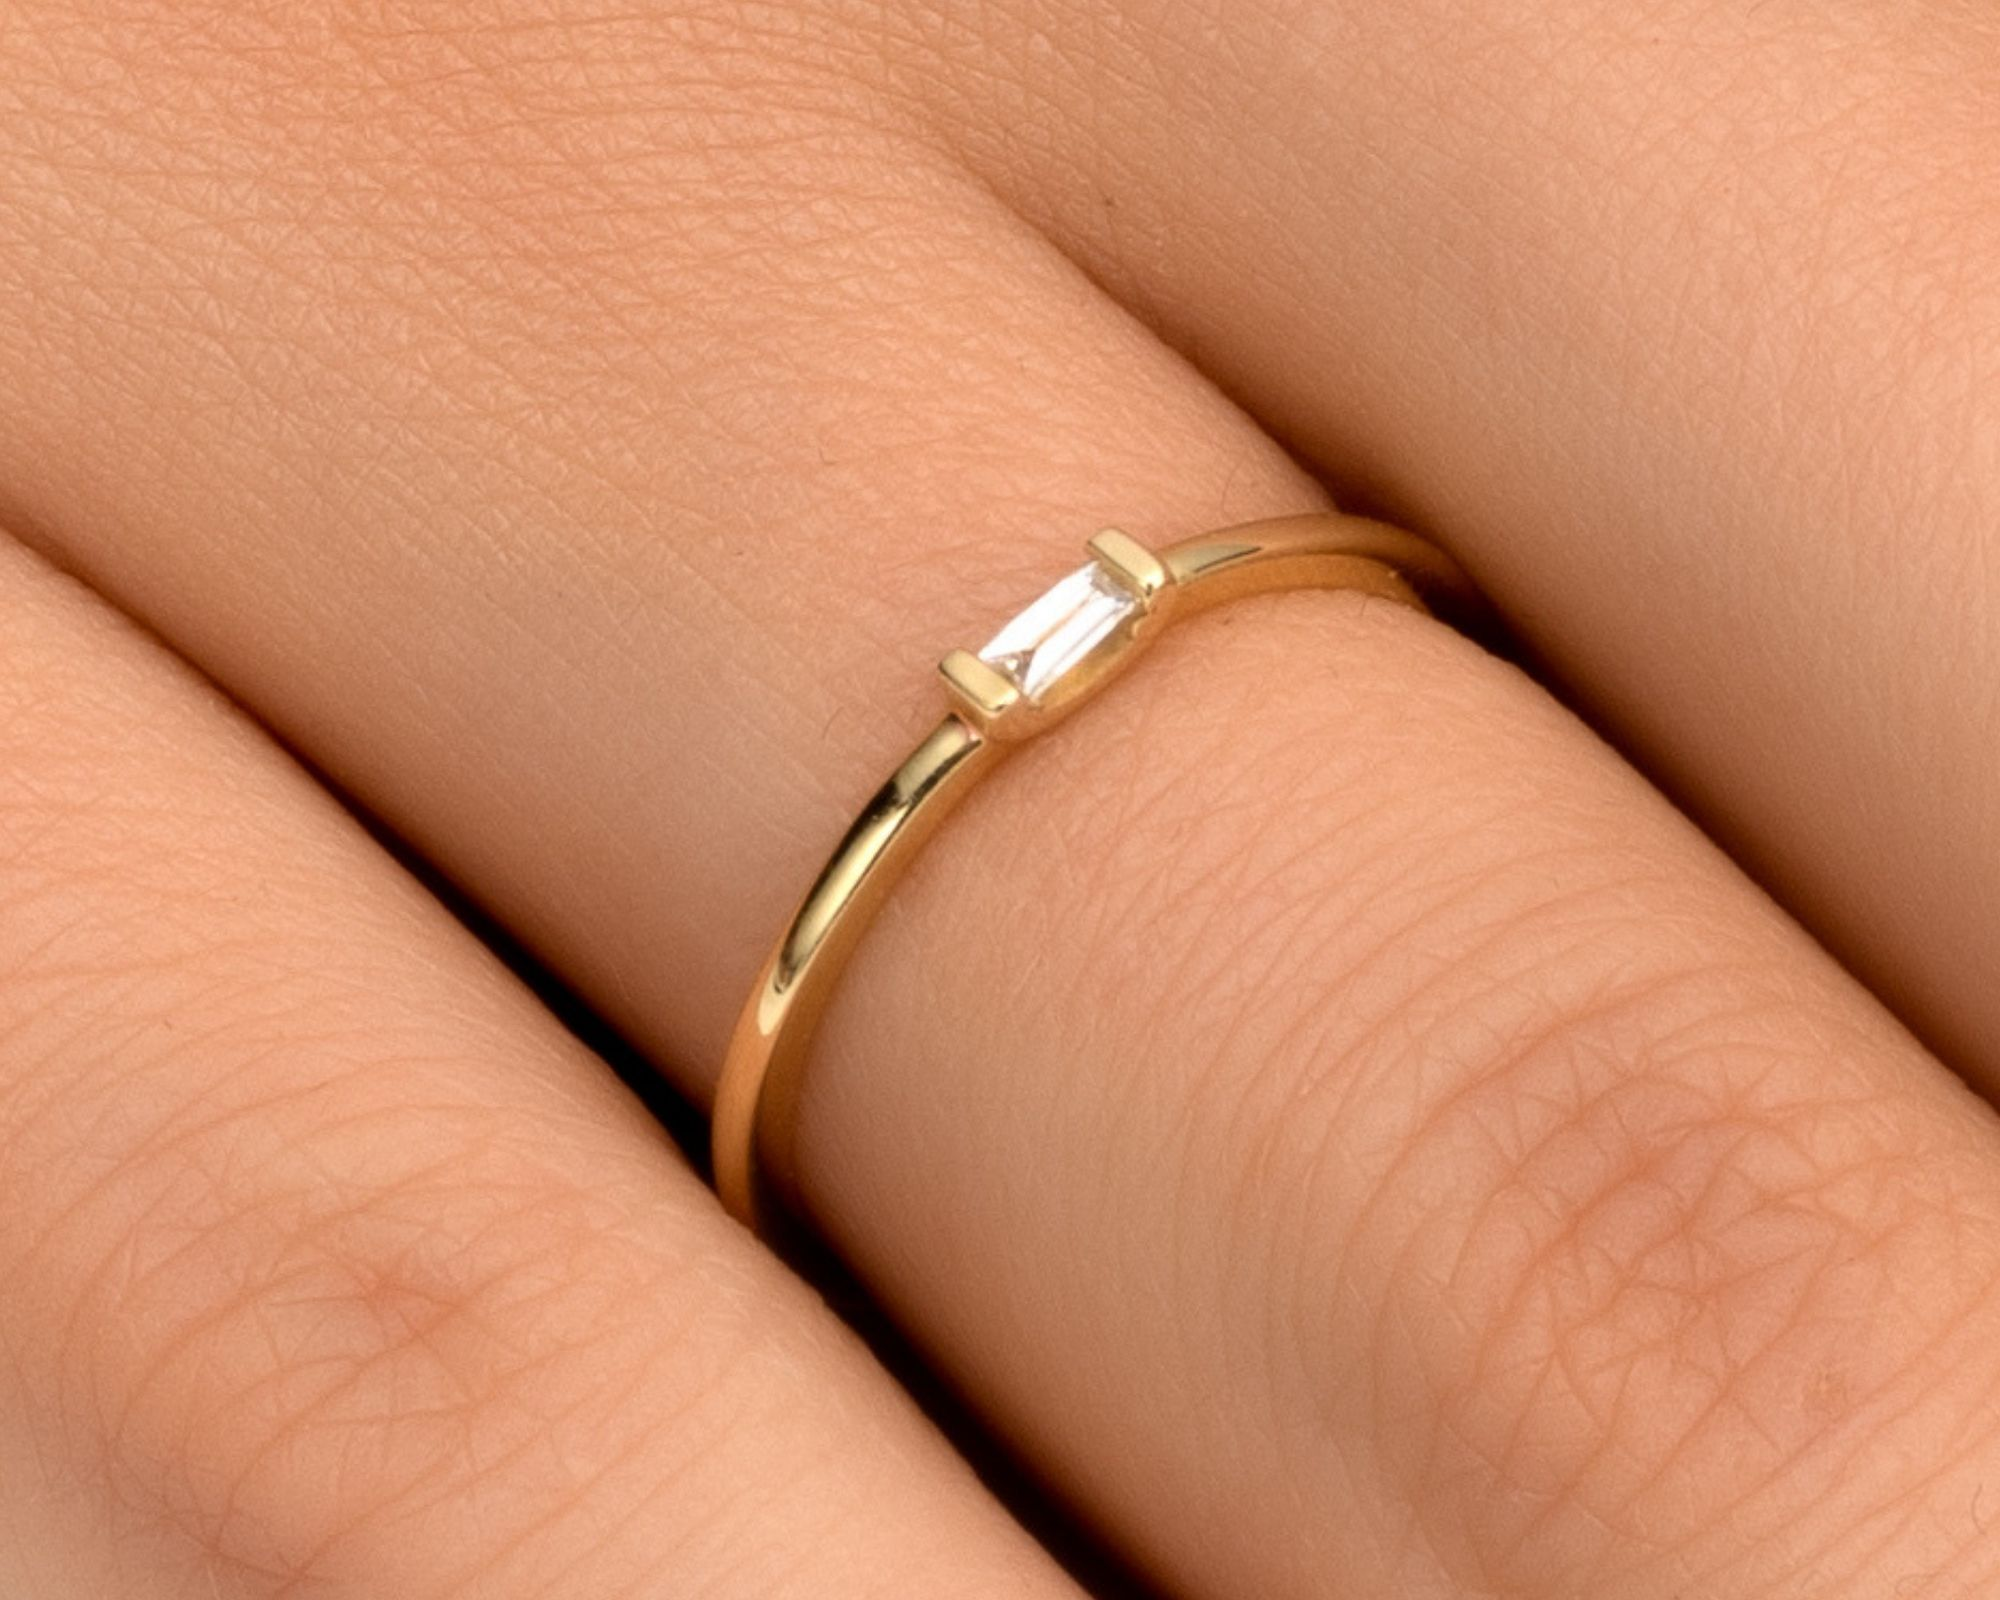 Diamond Ring For Women 4-14US Baguette Diamond Engagement Ring or Wedding Band 0.05 ct Handmade Thin Minimalist Affordable Jewelry in 14k//18k White Rose or Yellow Solid Gold Diamond Gift Ring